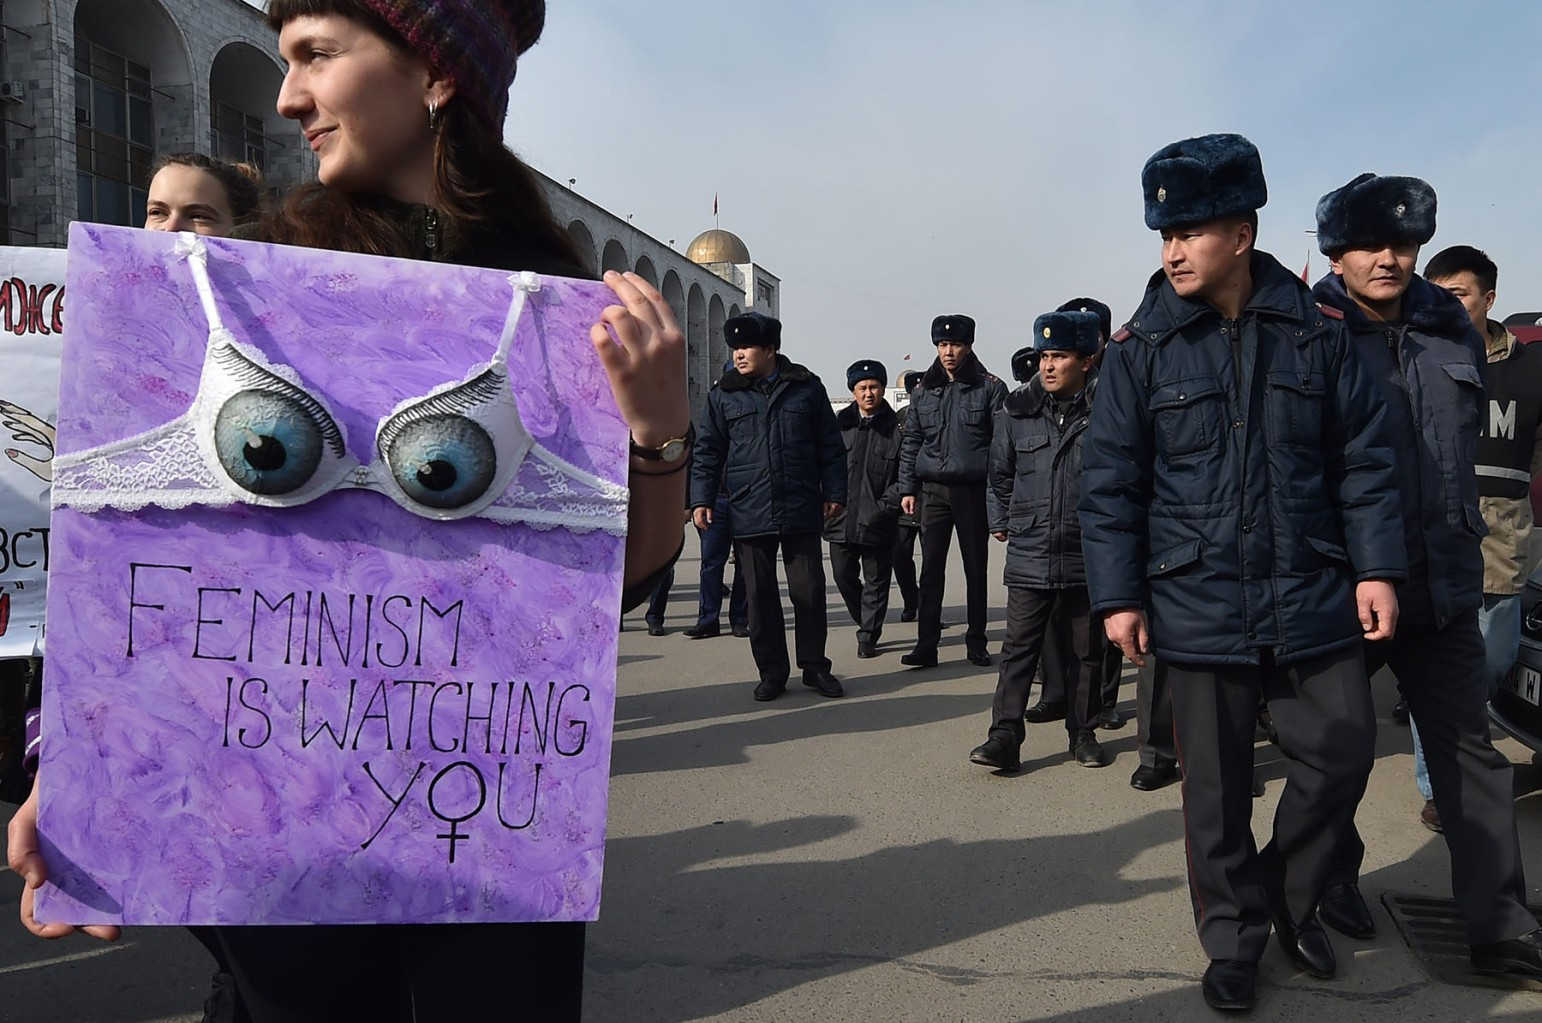 A woman takes part in an International World Women's Day rally in Bishkek, Kyrgyzstan, on March 8. VYACHESLAV OSELEDKO/AFP/Getty Images